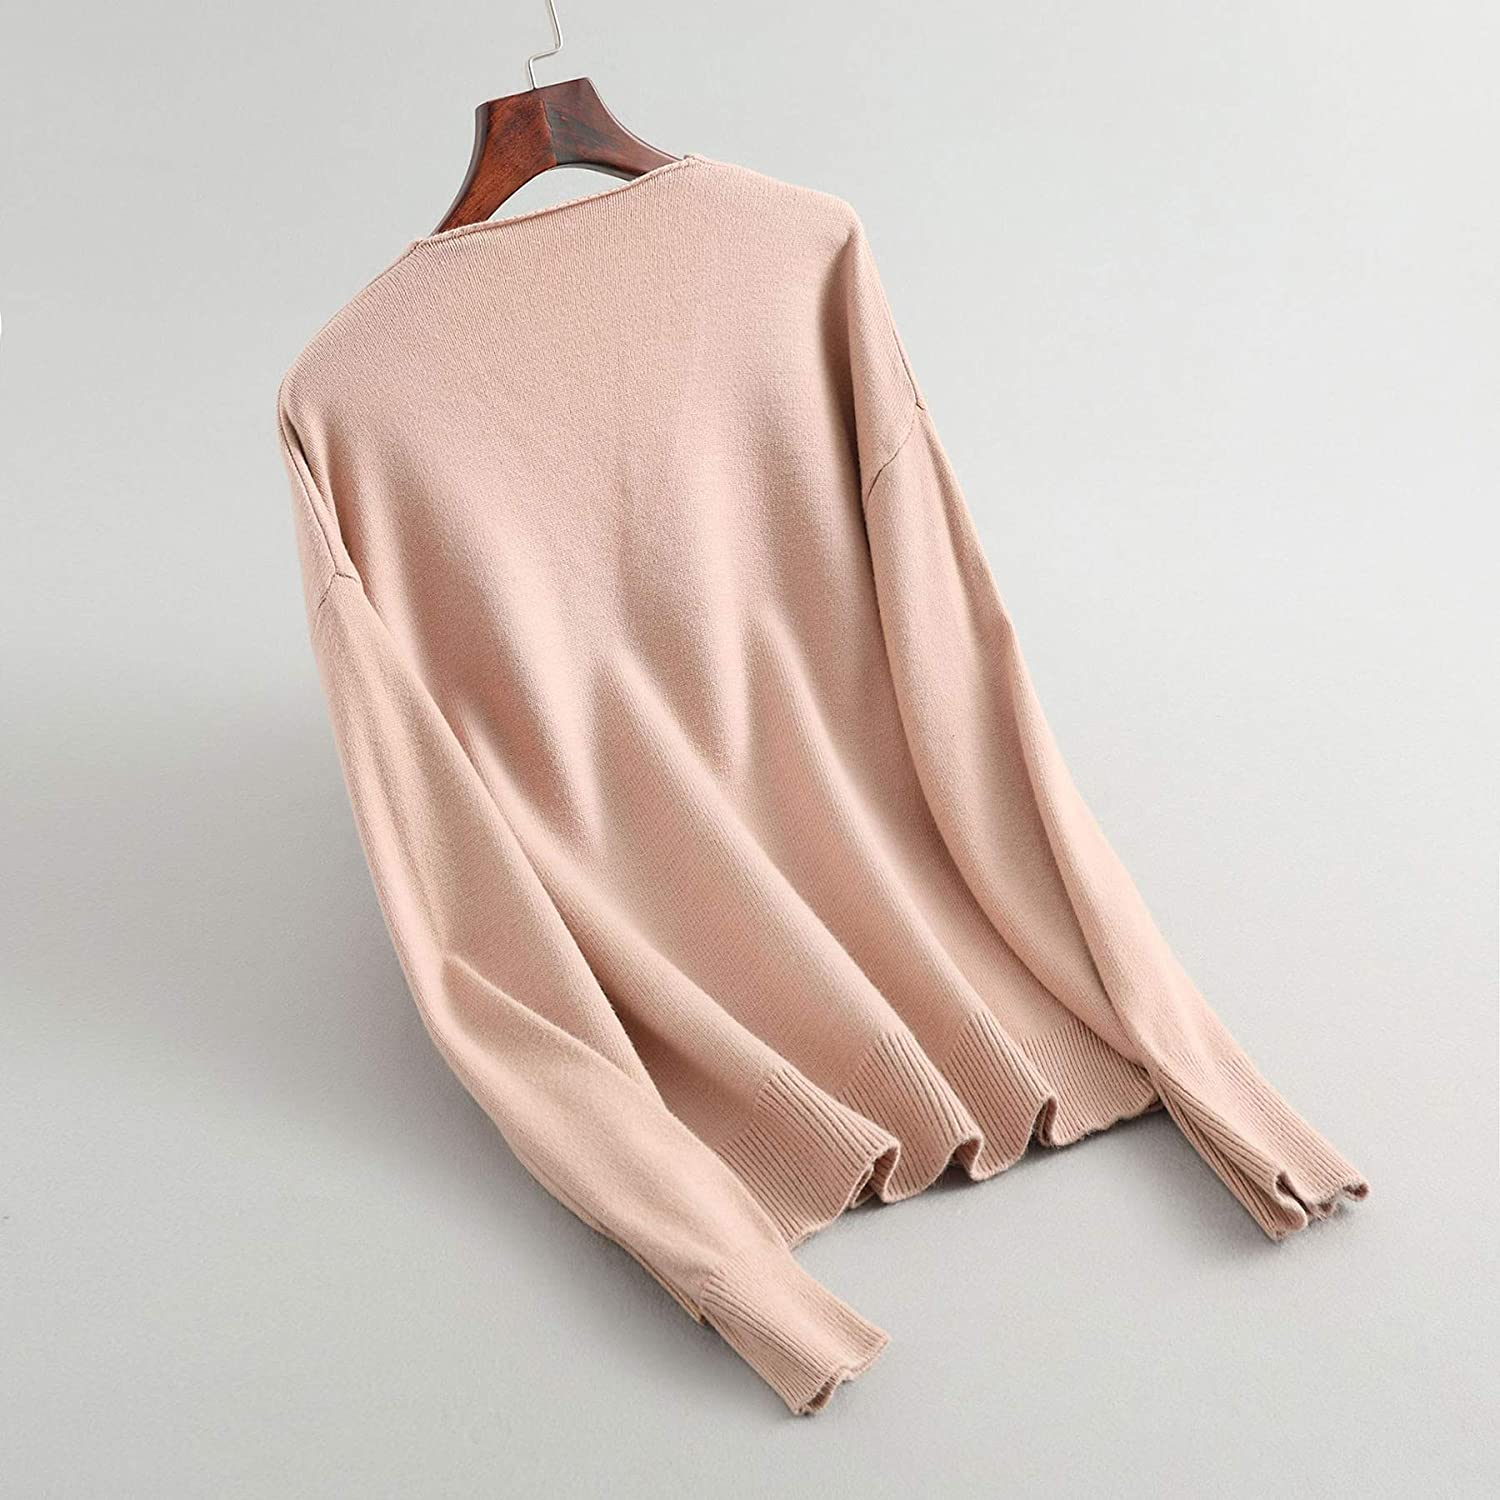 Yimoon Women/'s Loose V Neck Sweater Top Soft Solid Long Sleeve Knit Jumper